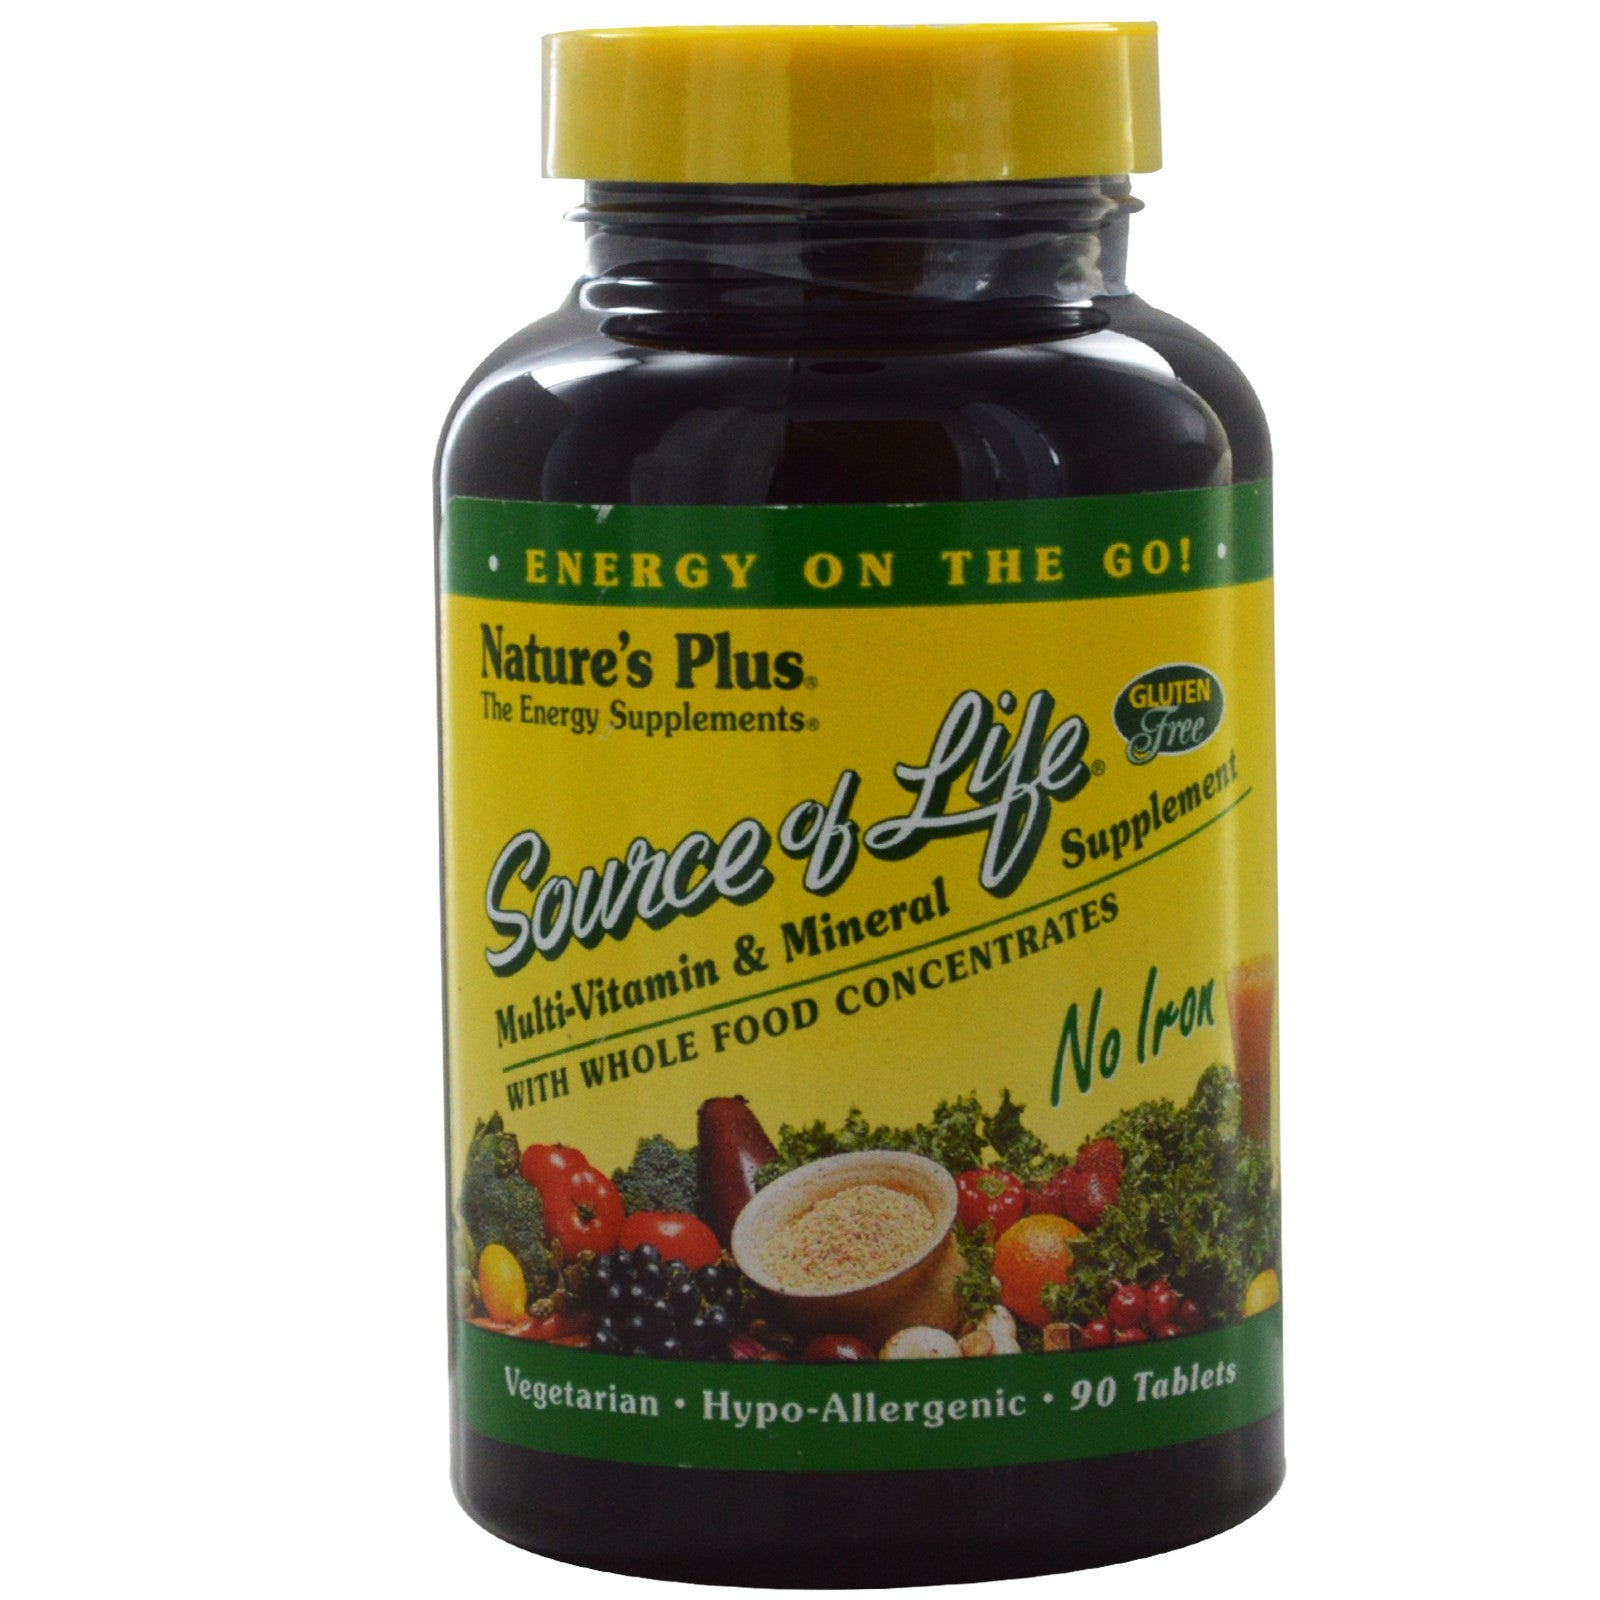 Natures Plus Source of Life Multi-Vitamin & Mineral Tablets (No Iron), 90 tabs.-NaturesWisdom